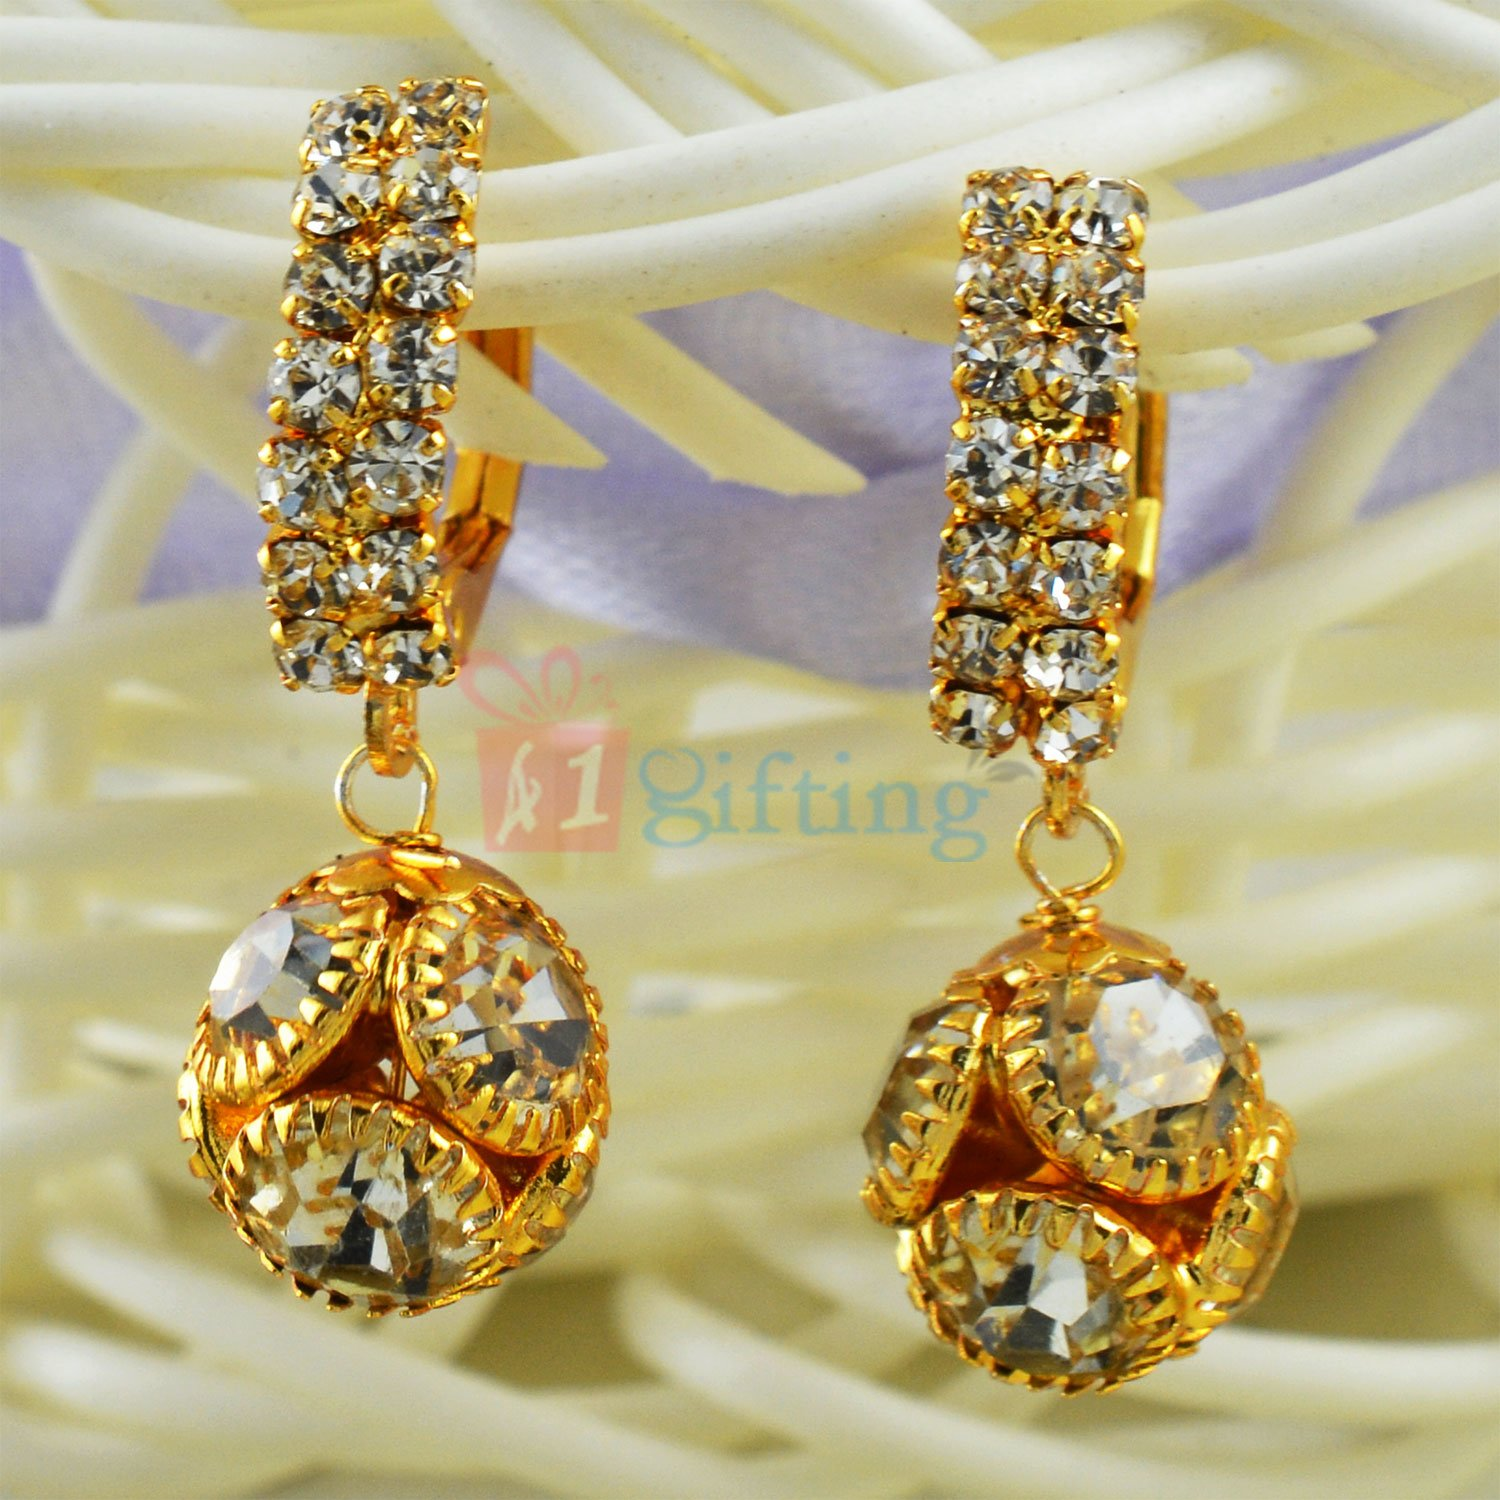 Diamond Ball Awesome Golden Touch Earrings